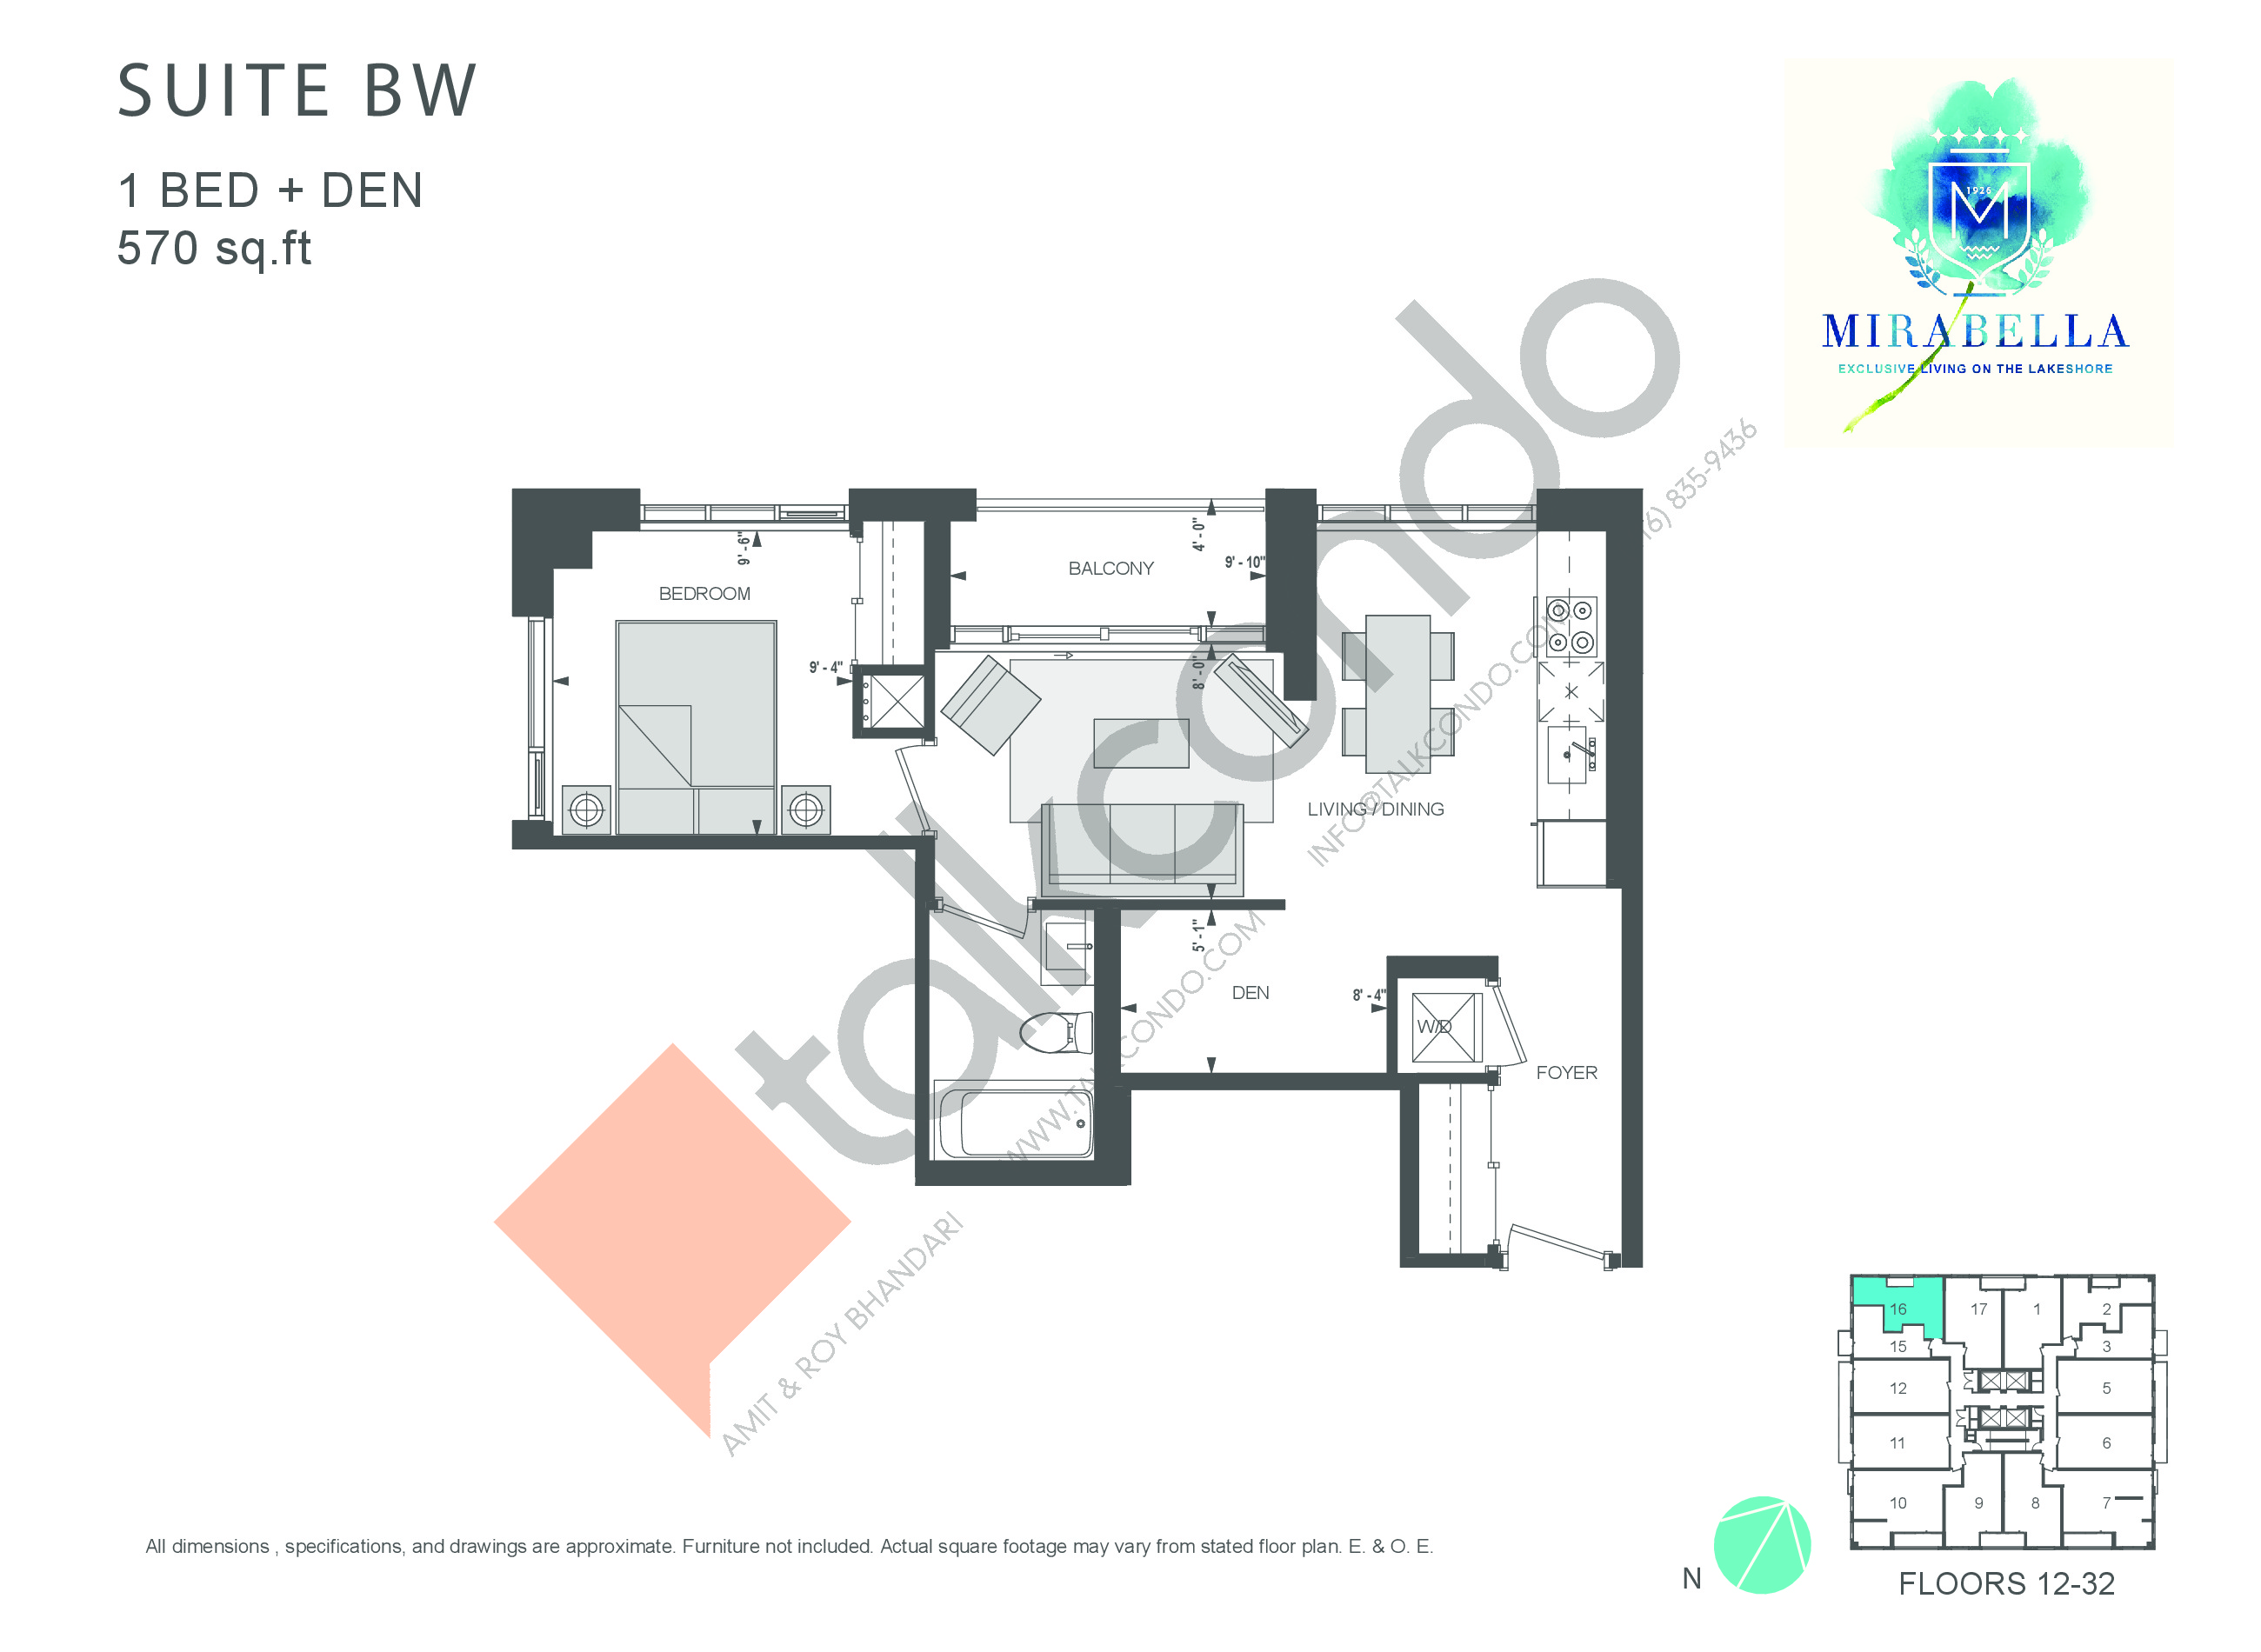 Suite BW Floor Plan at Mirabella Luxury Condos East Tower - 570 sq.ft